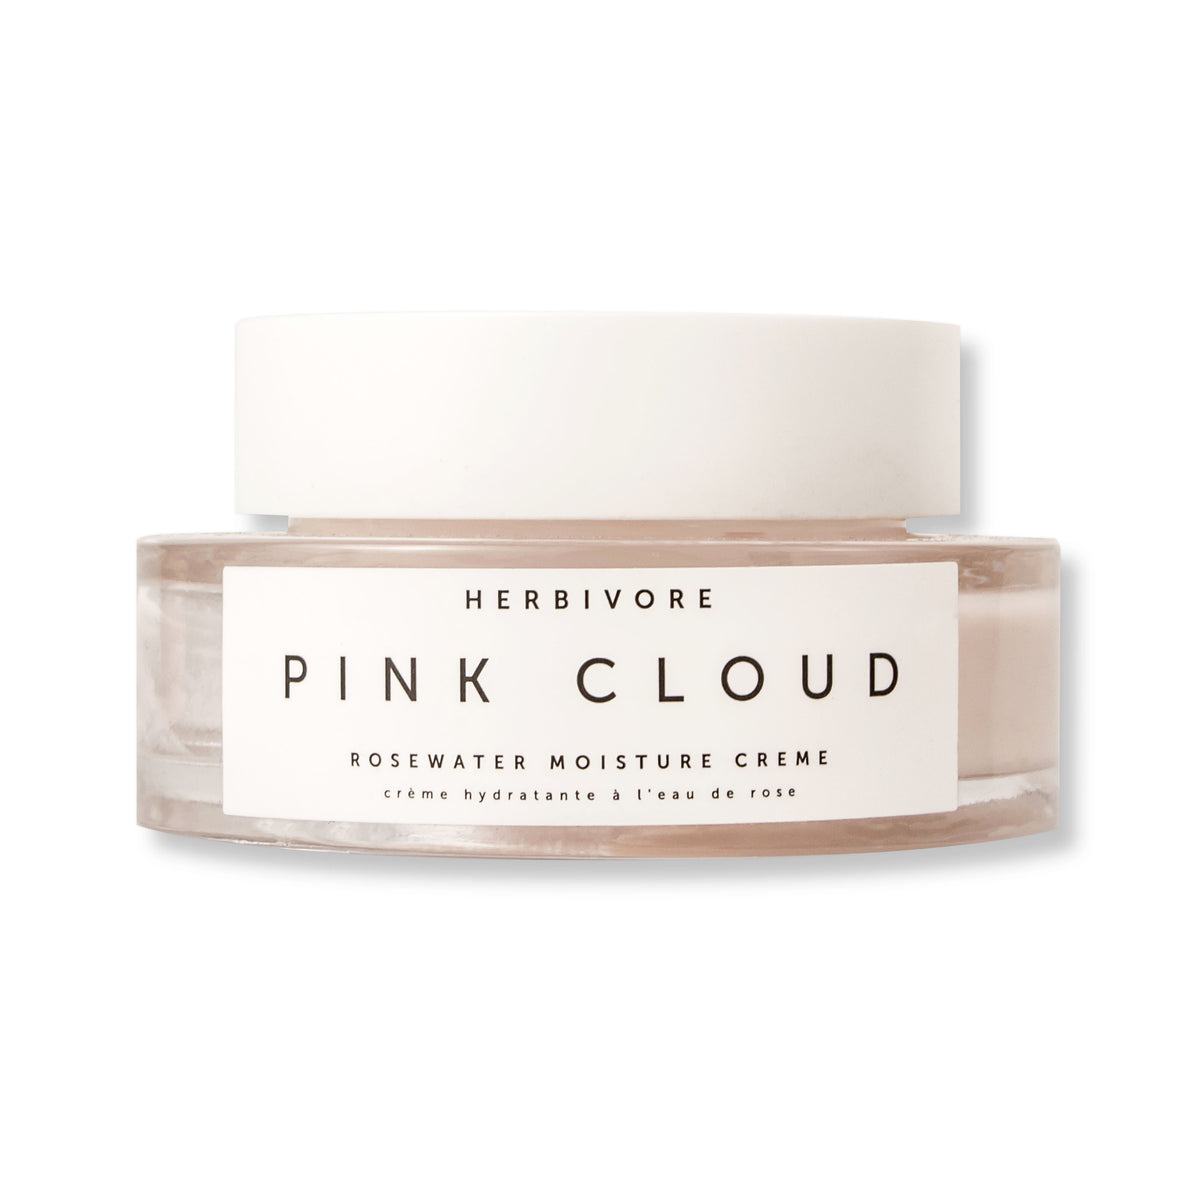 Pink Cloud Rosewater Moisture Creme